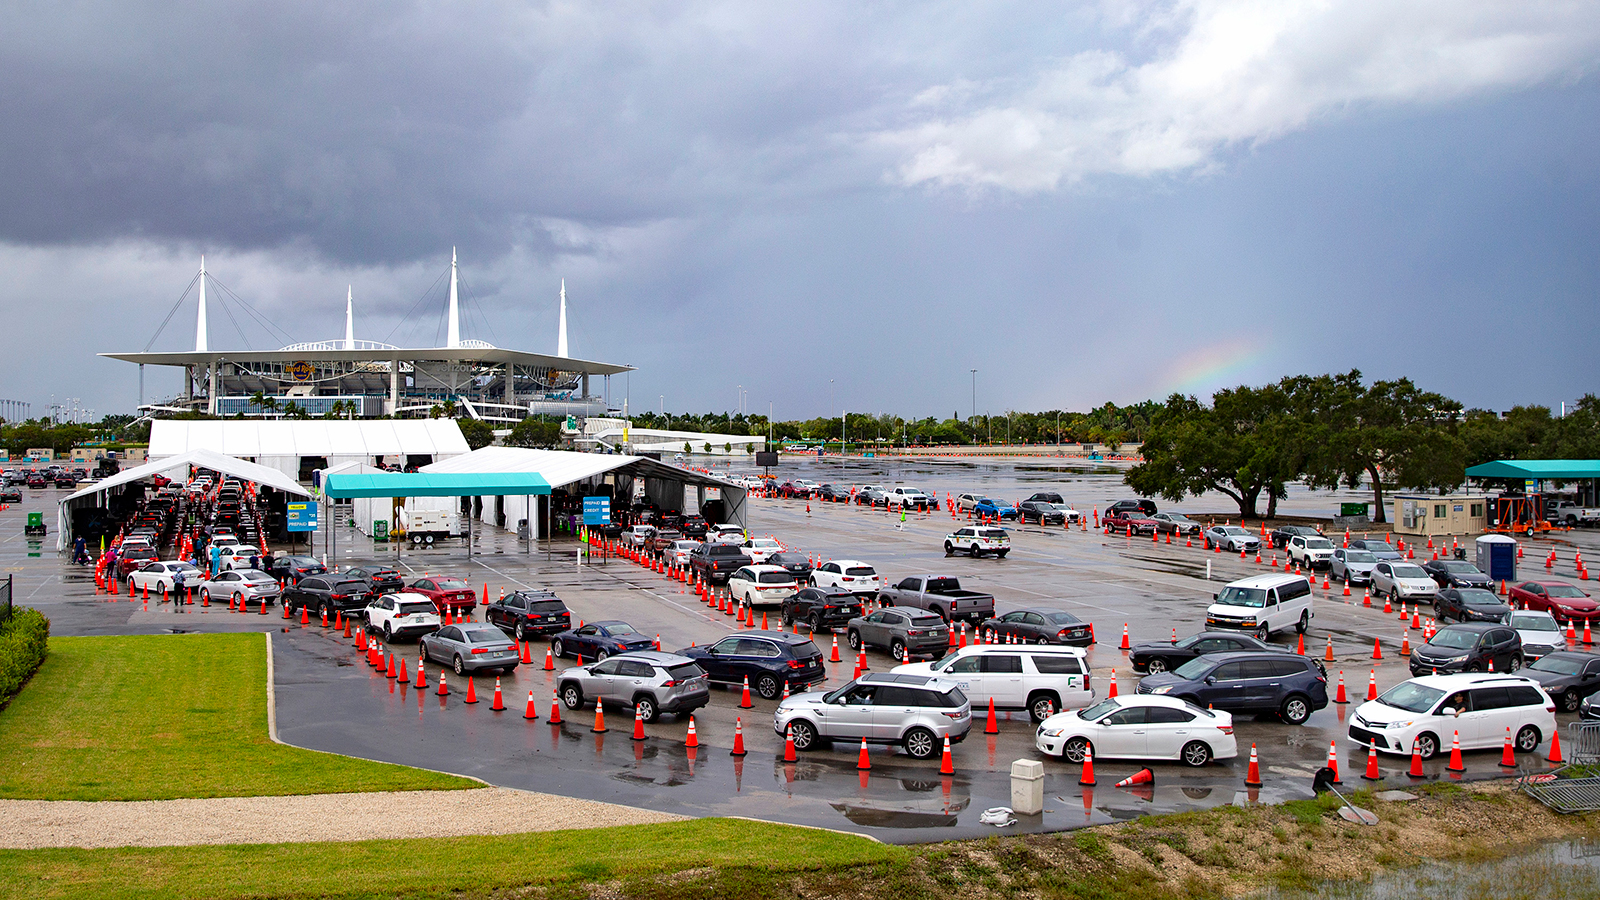 Vehicles line up as a health care workers help to check in people being tested at the Covid-19 drive-thru testing center at Hard Rock Stadium in Miami Gardens, Florida, on November 22.